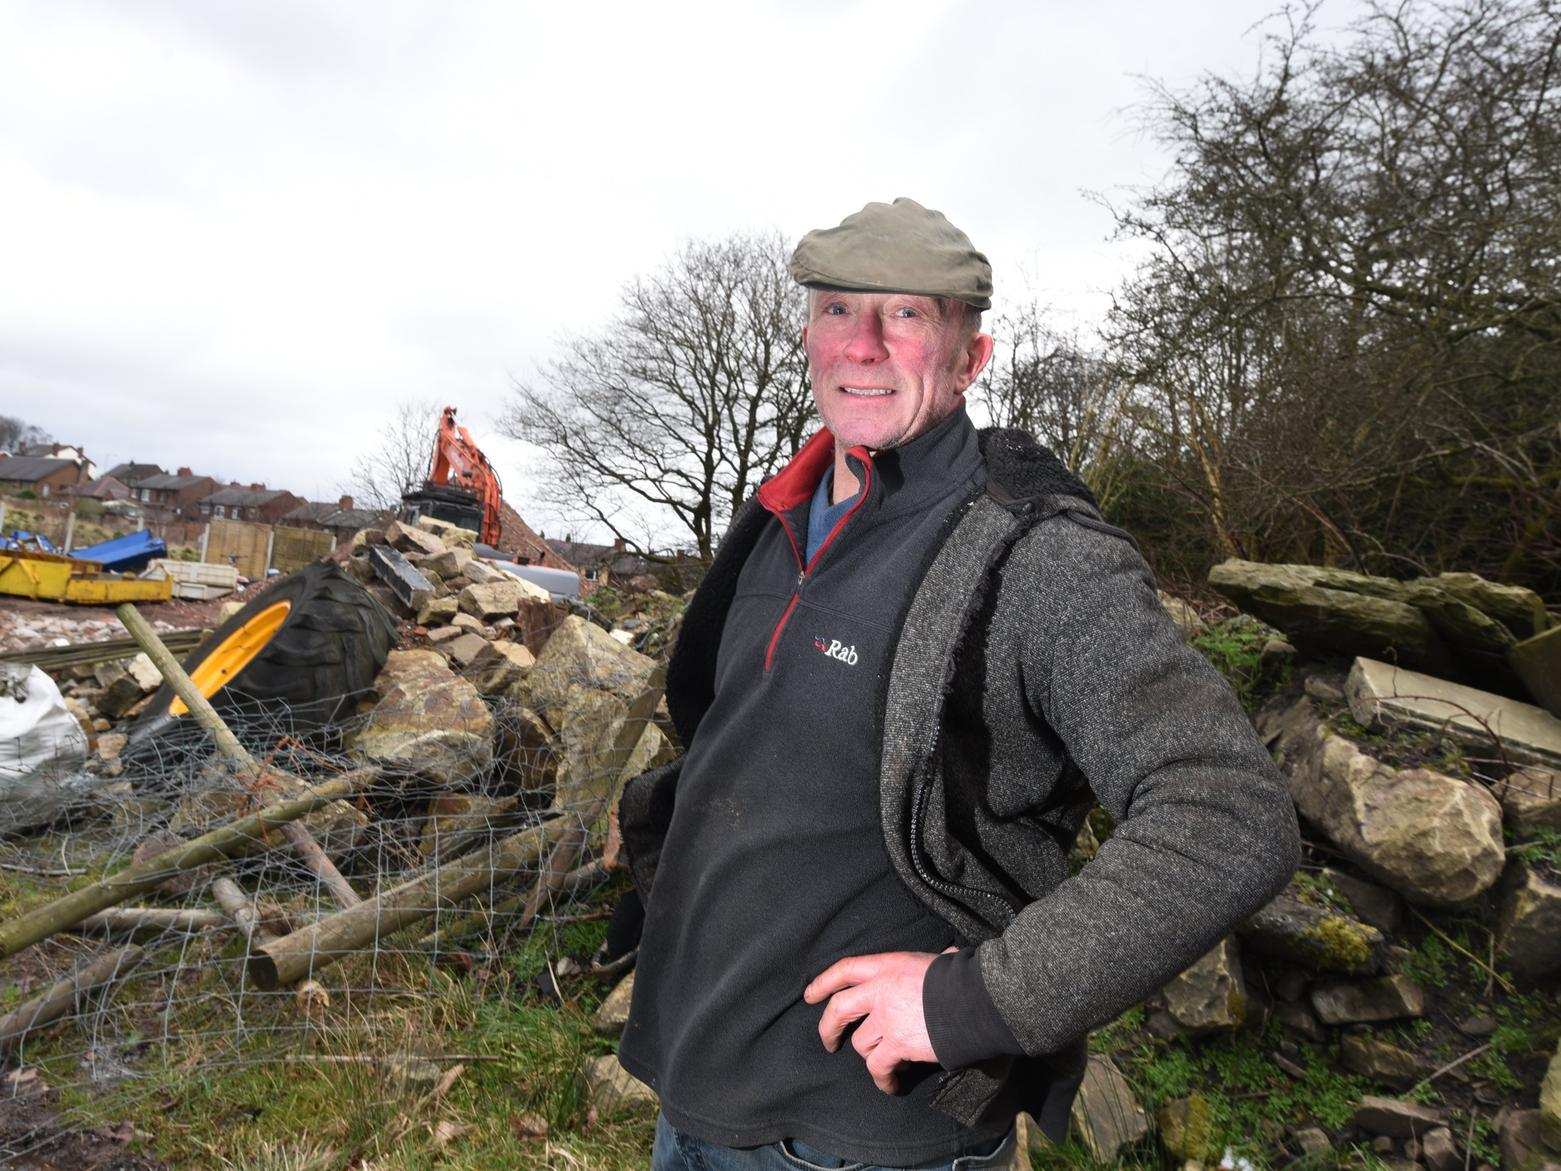 Owner hits back at claims his Wigan site is an 'eyesore'